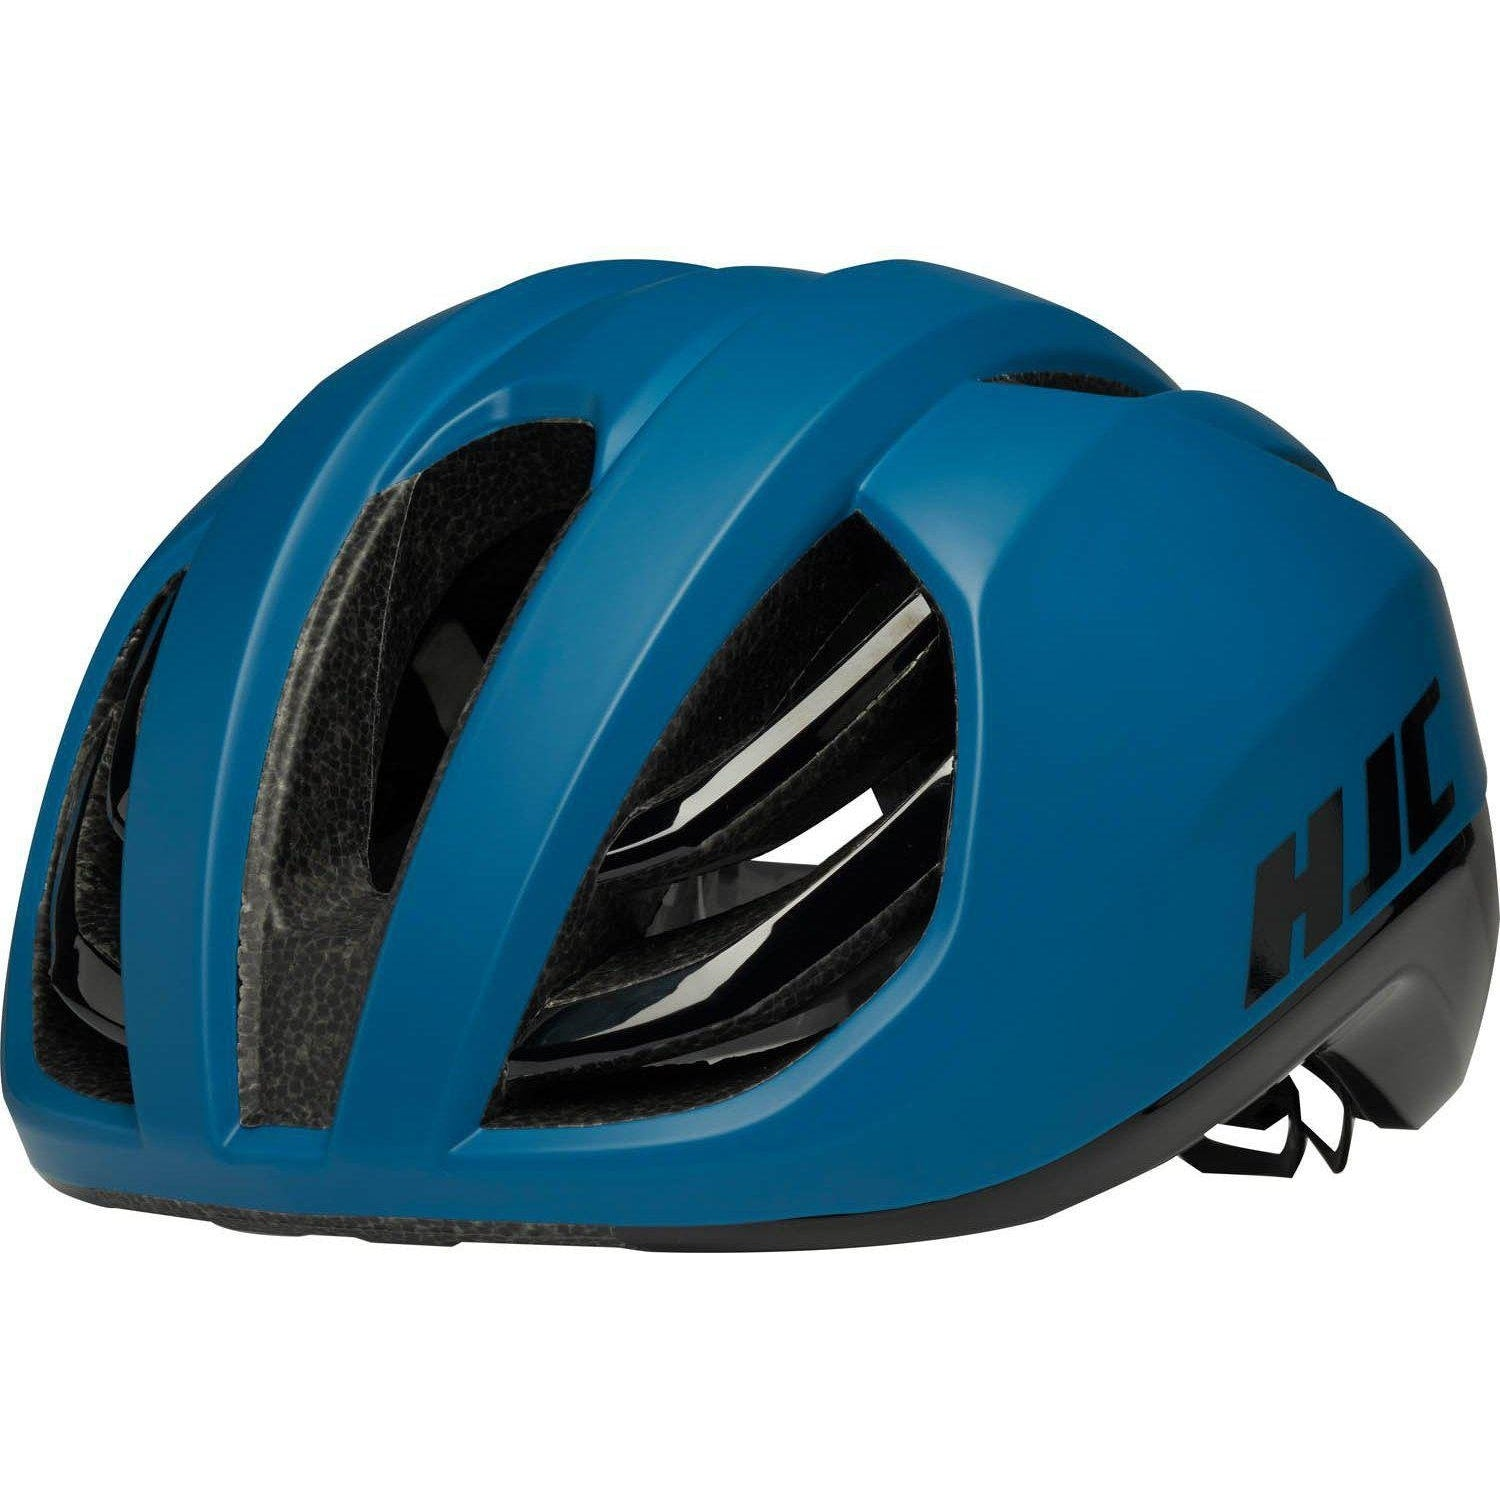 HJC-HJC Atara Road Cycling Helmet-S-Navy-HJC81180201-saddleback-elite-performance-cycling